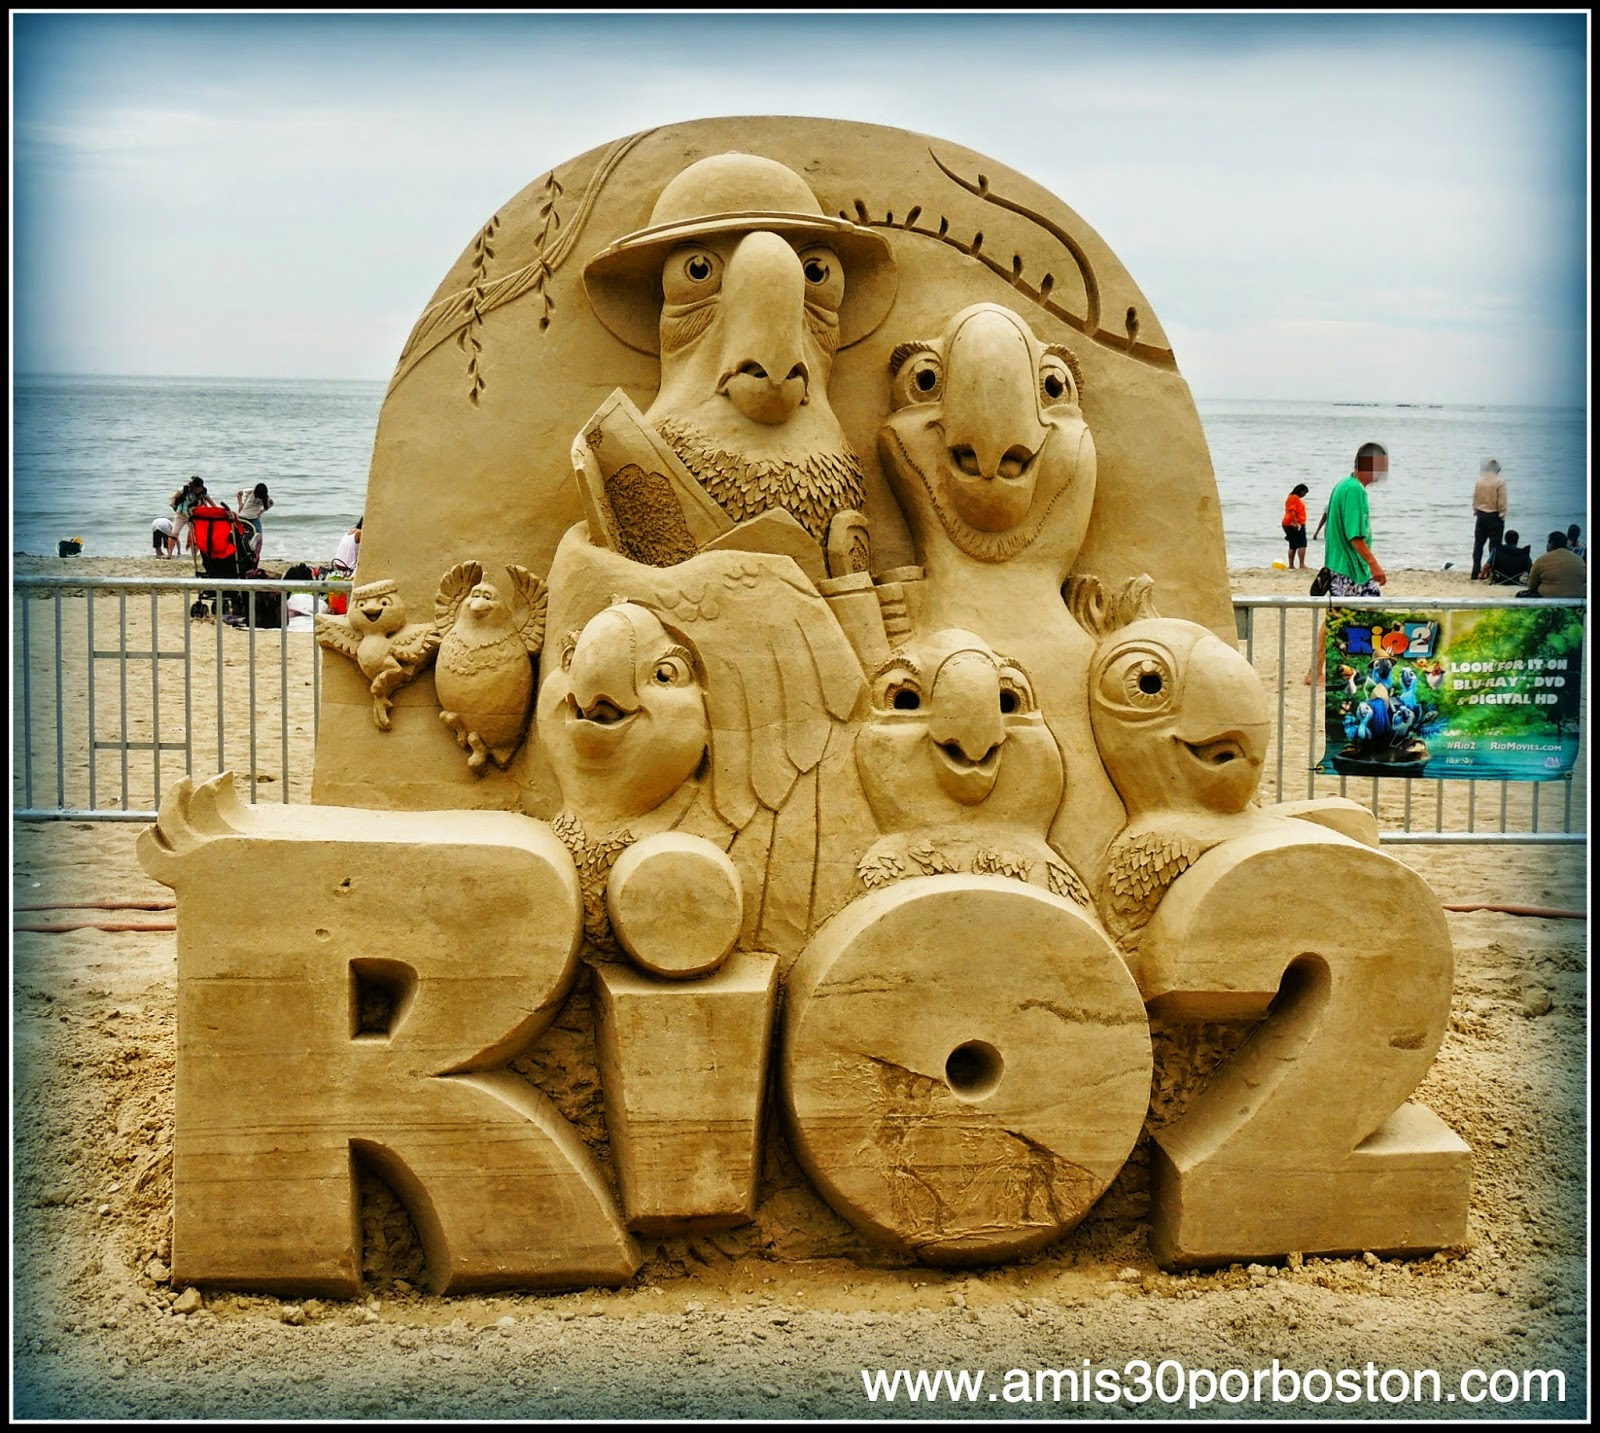 Revere Beach 2014 National Sand Sculpting Festival: Escultura del Sponsor